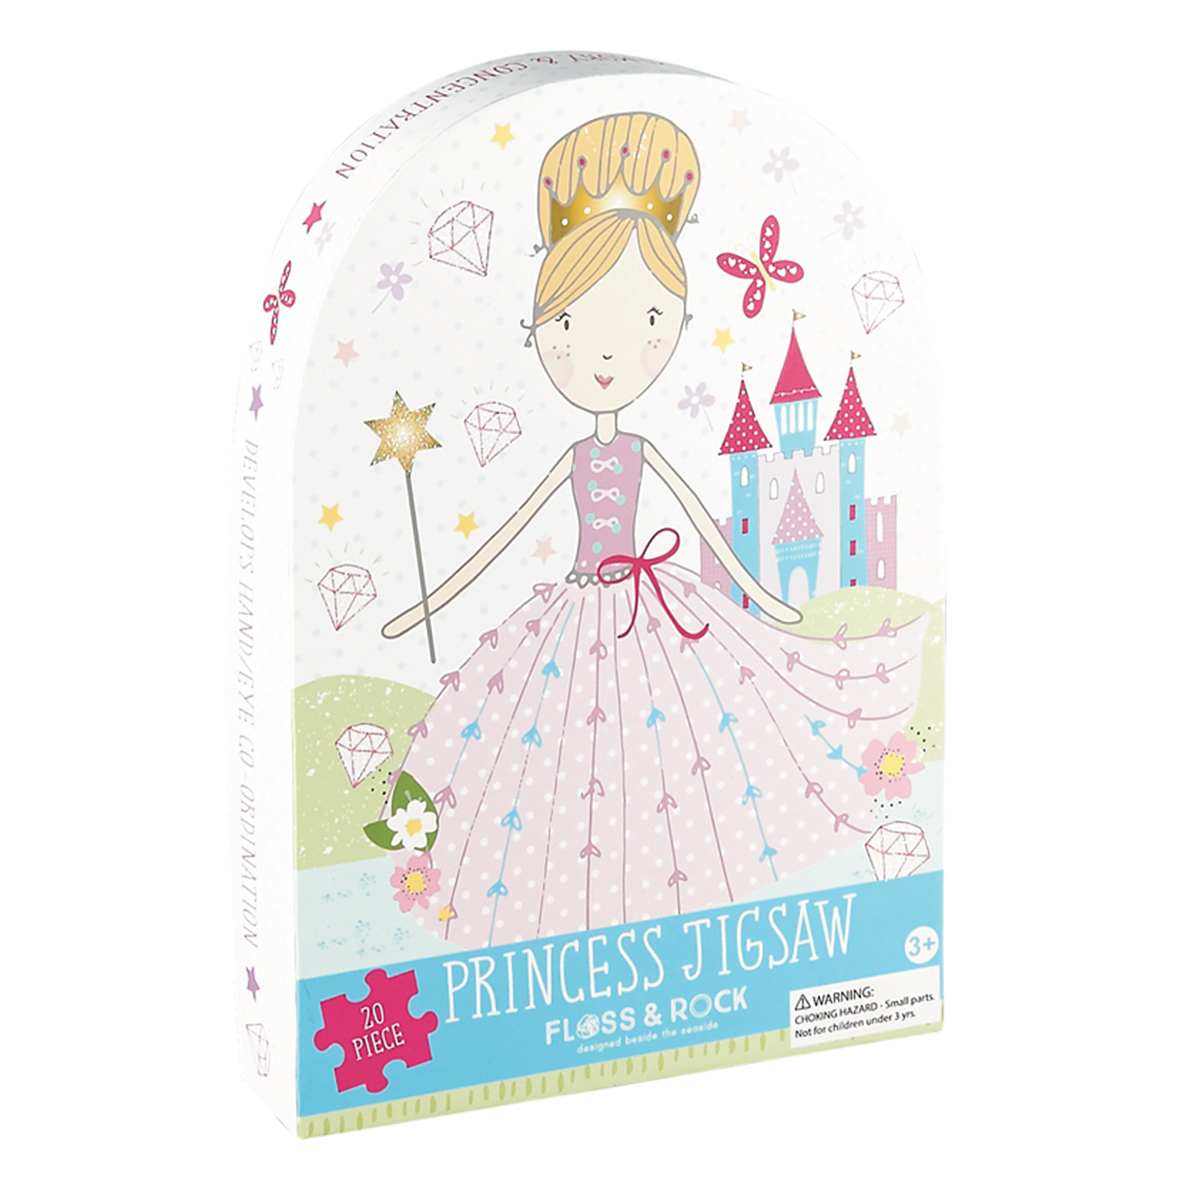 Floss & Rock Princess 20 Piece Jigsaw AW19